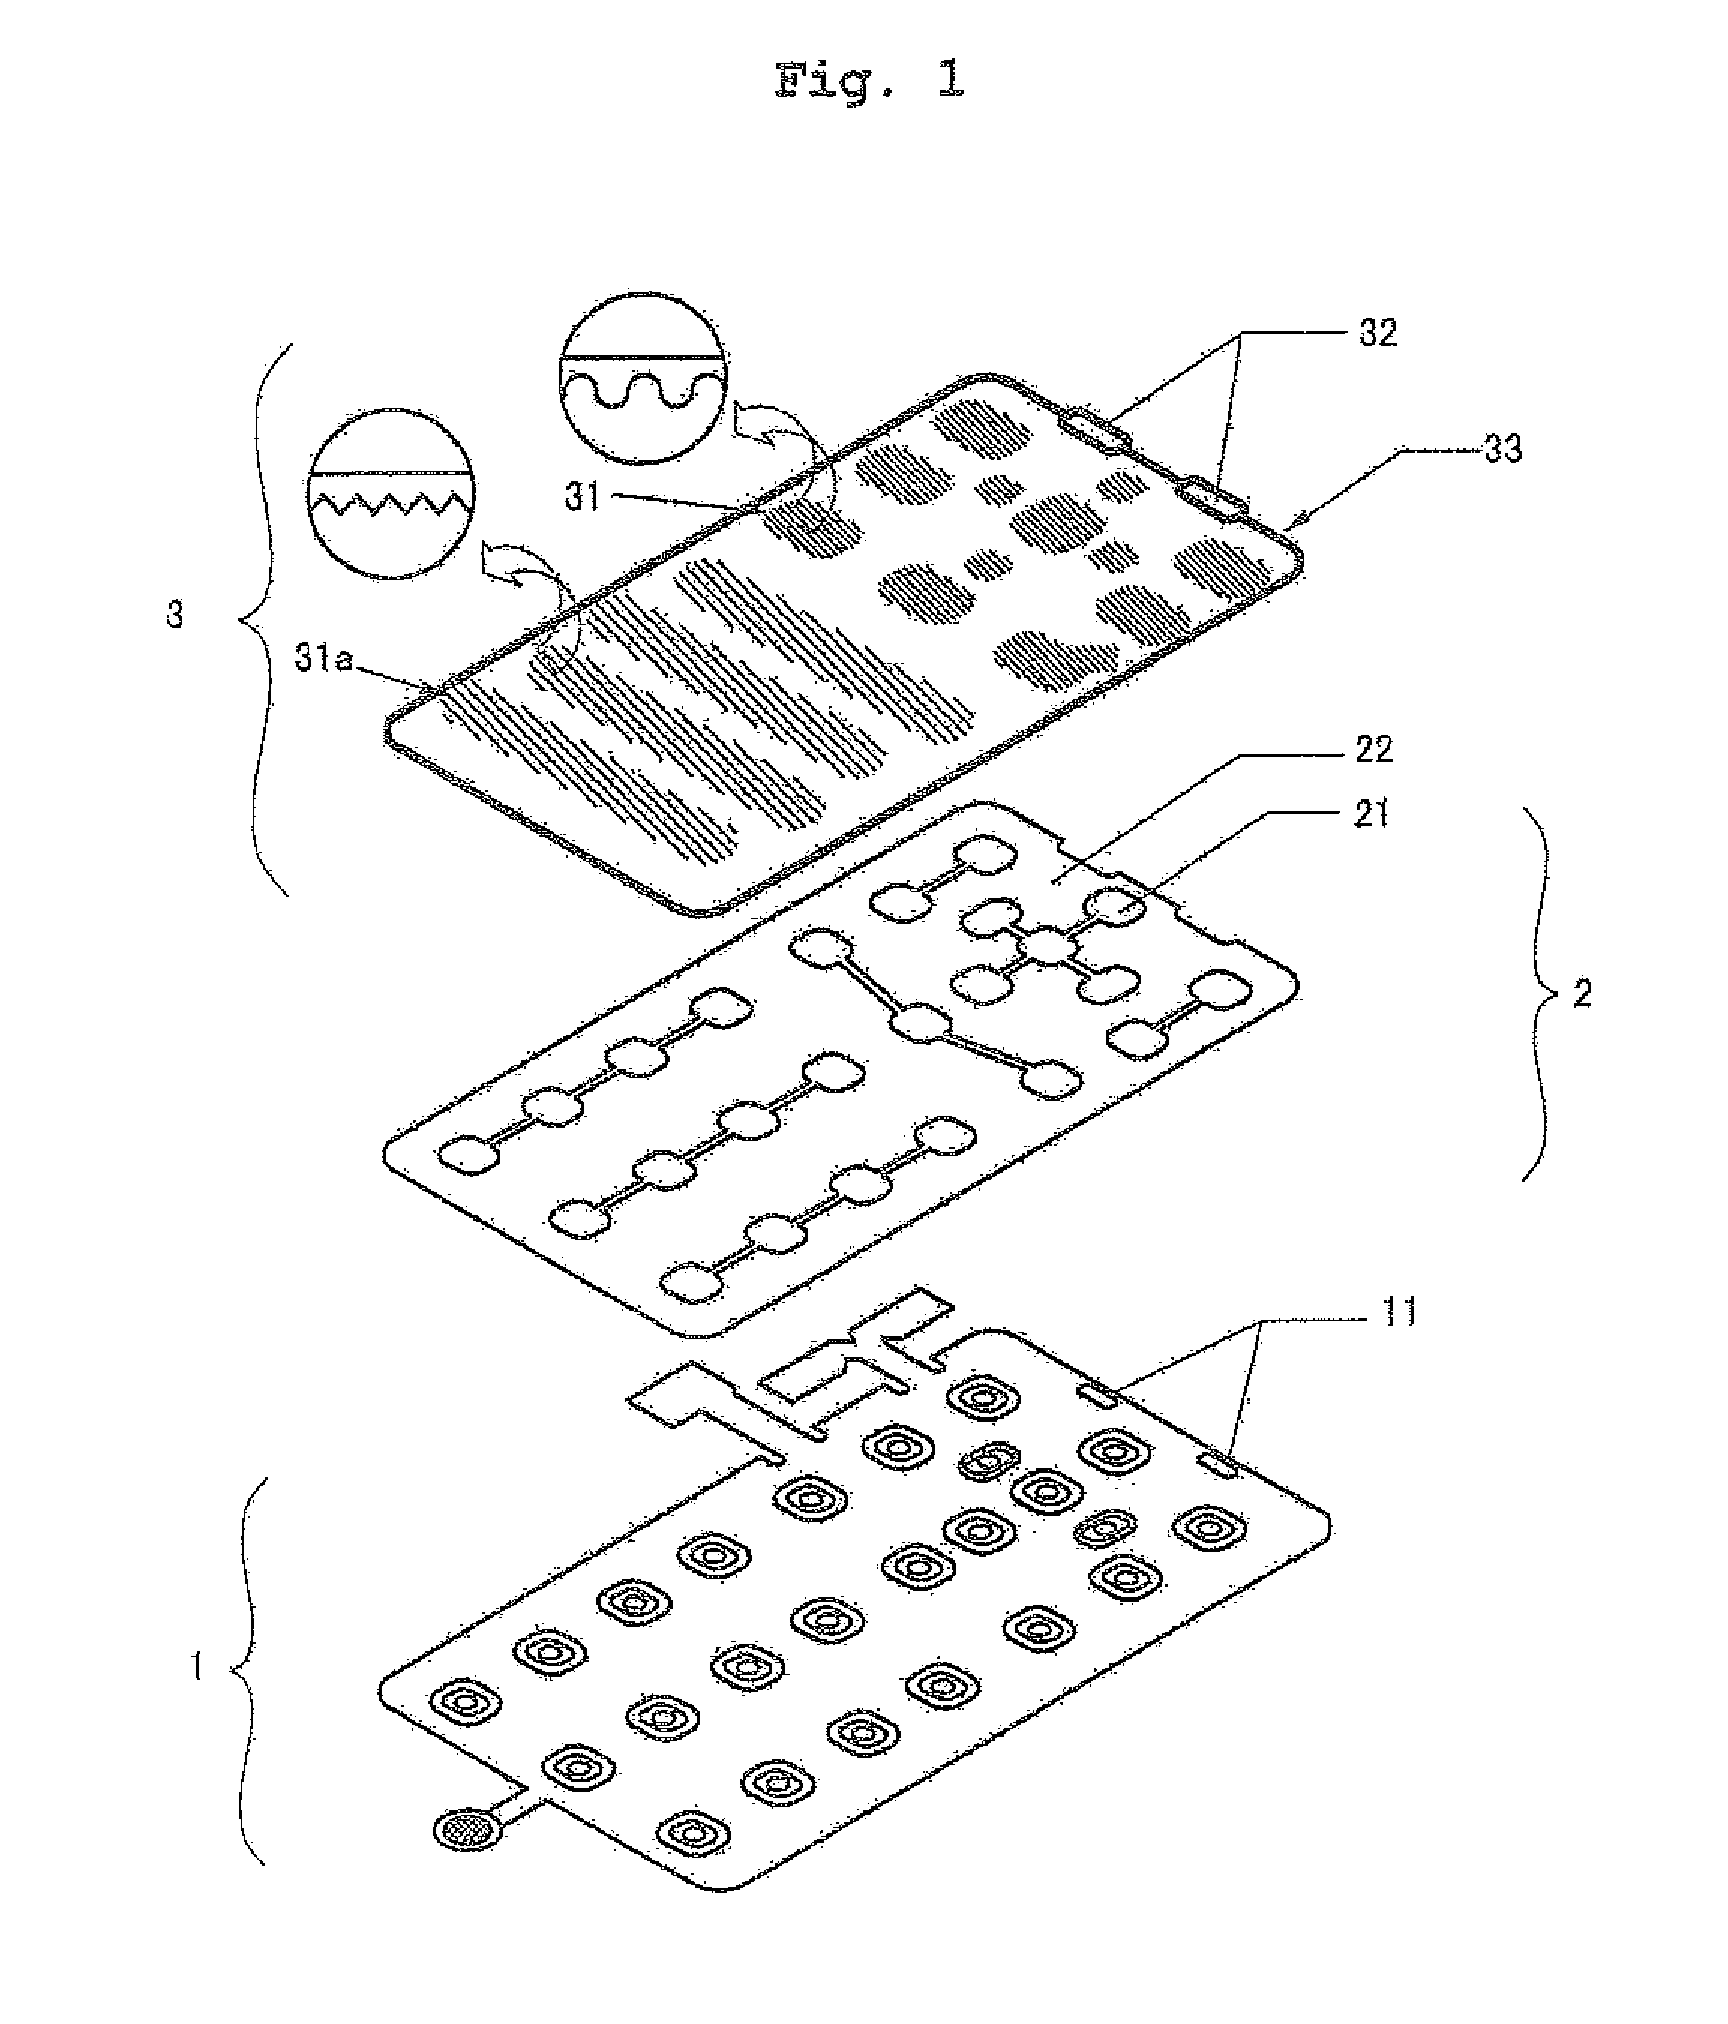 patent us7429709 - keypad pcb assembly for mobile phone with light guide plate